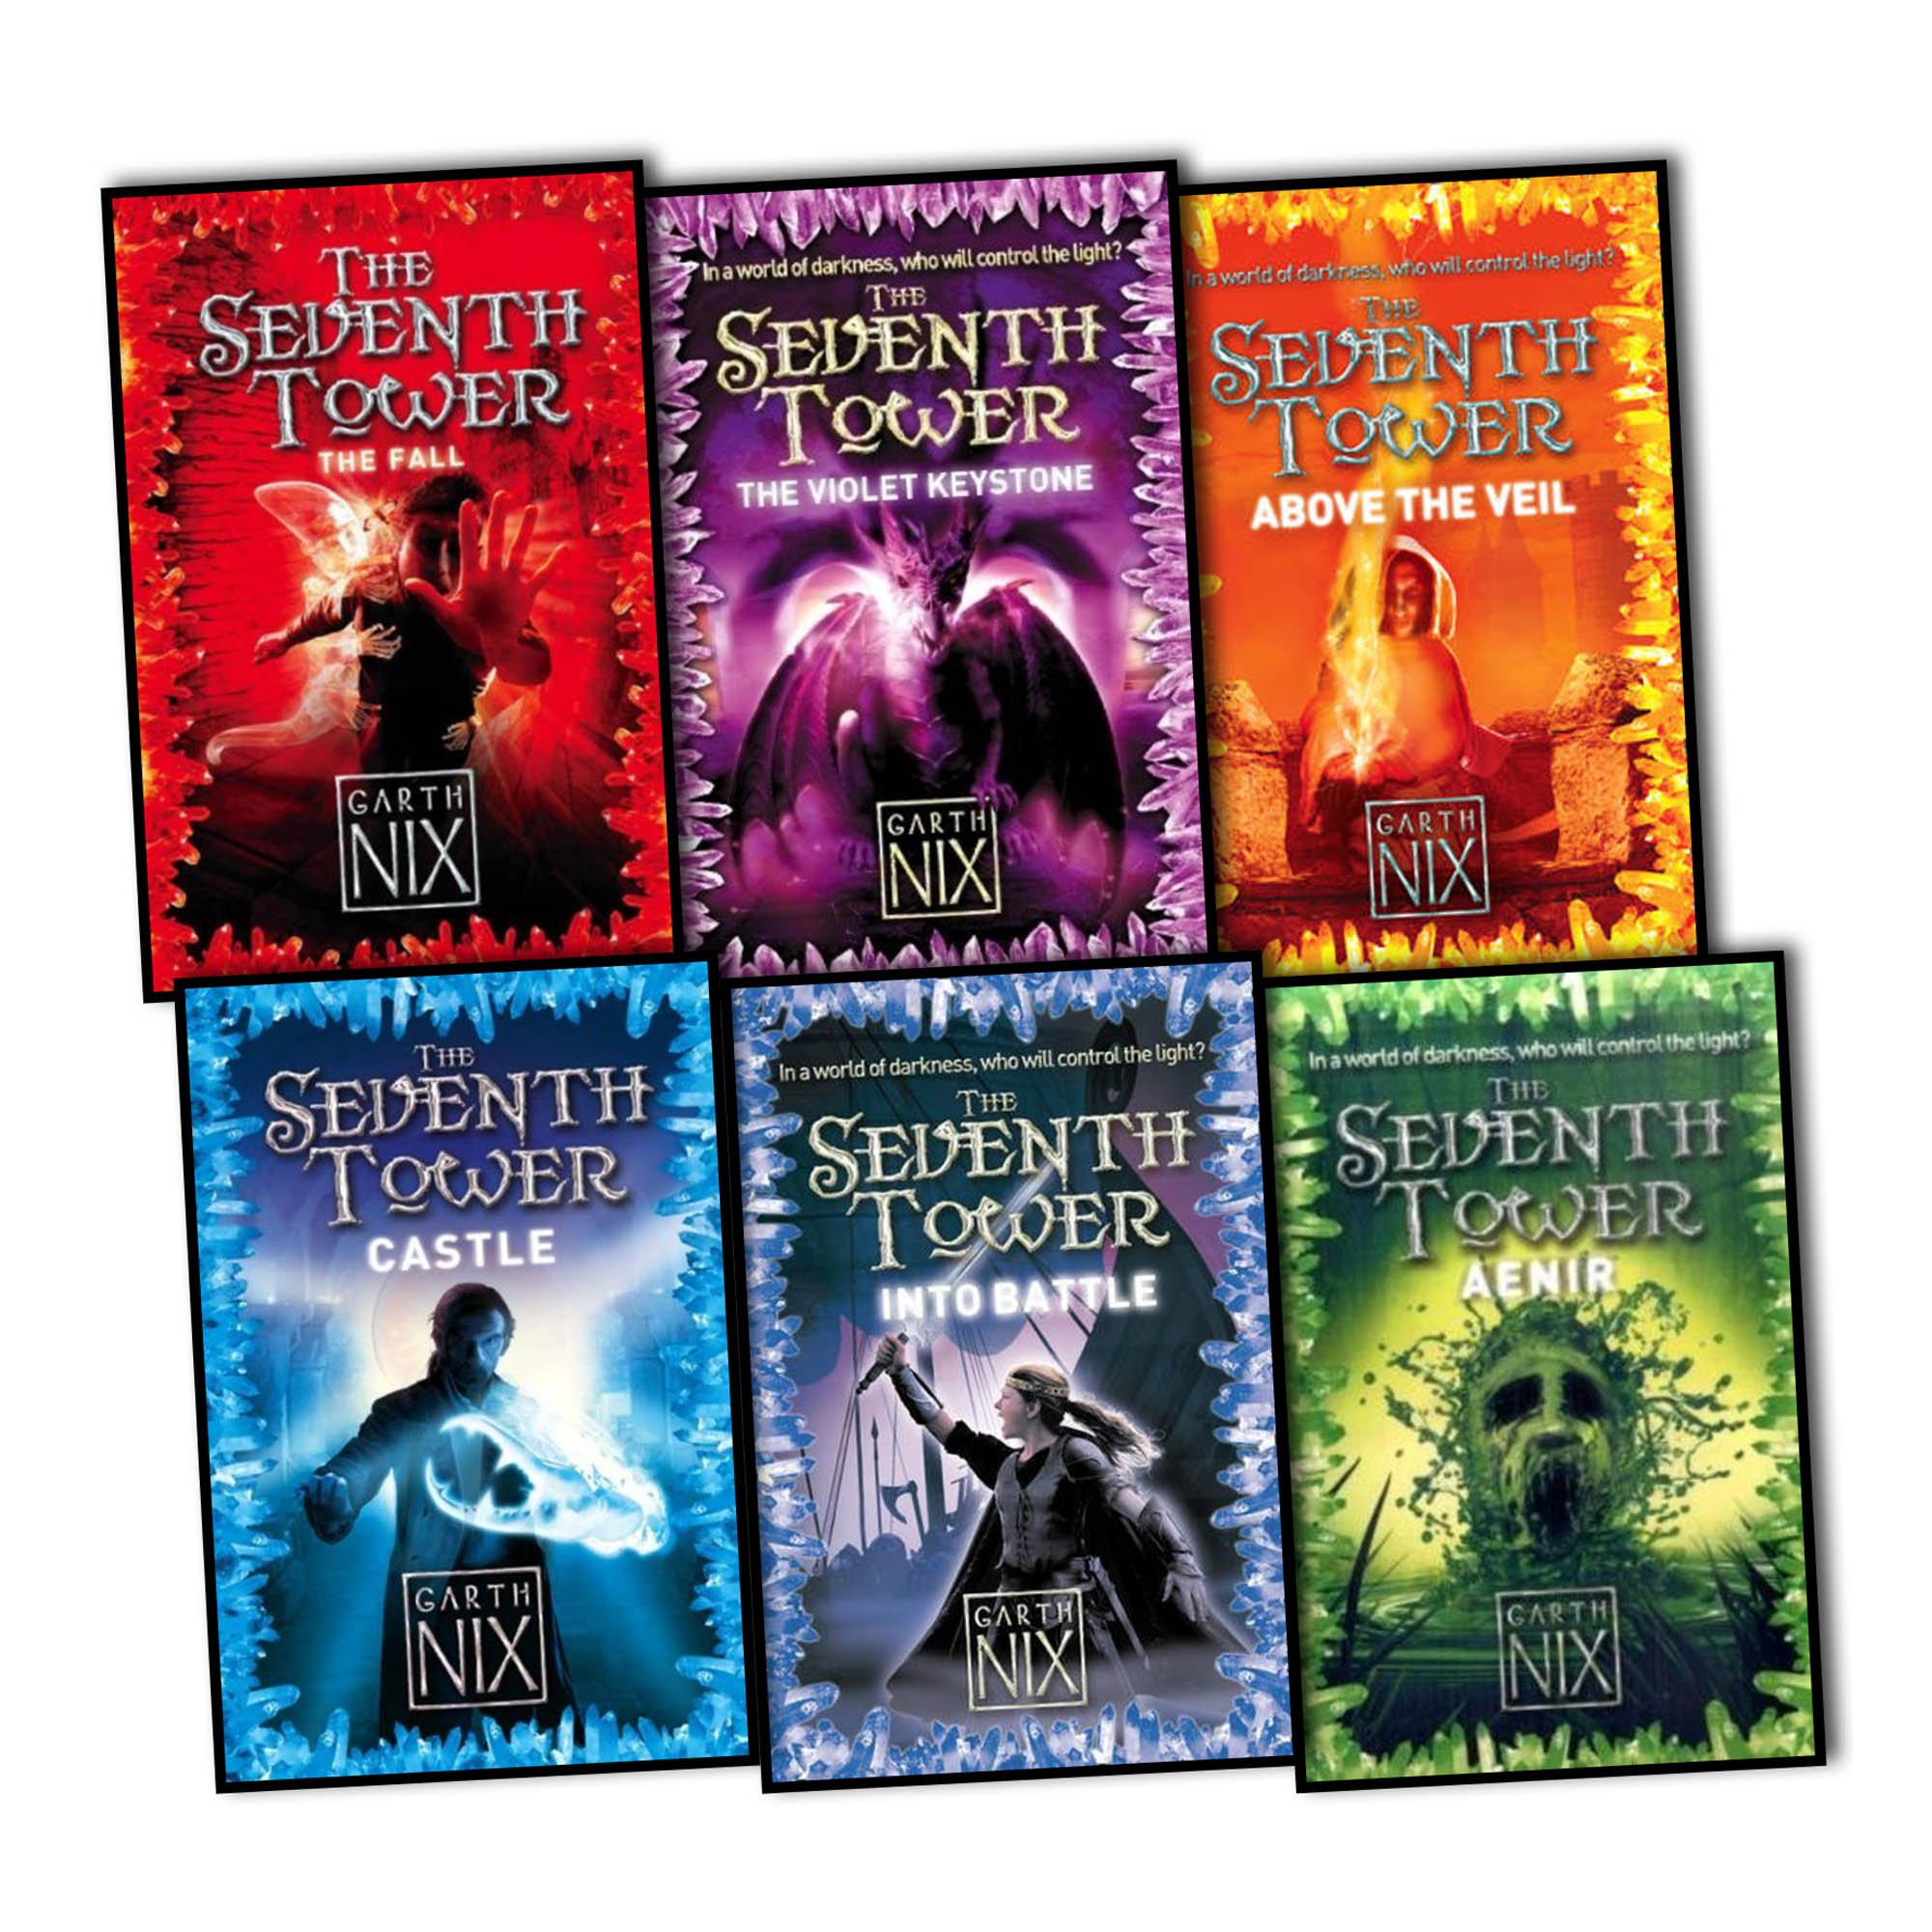 THE SEVENTH TOWER SERIES EPUB